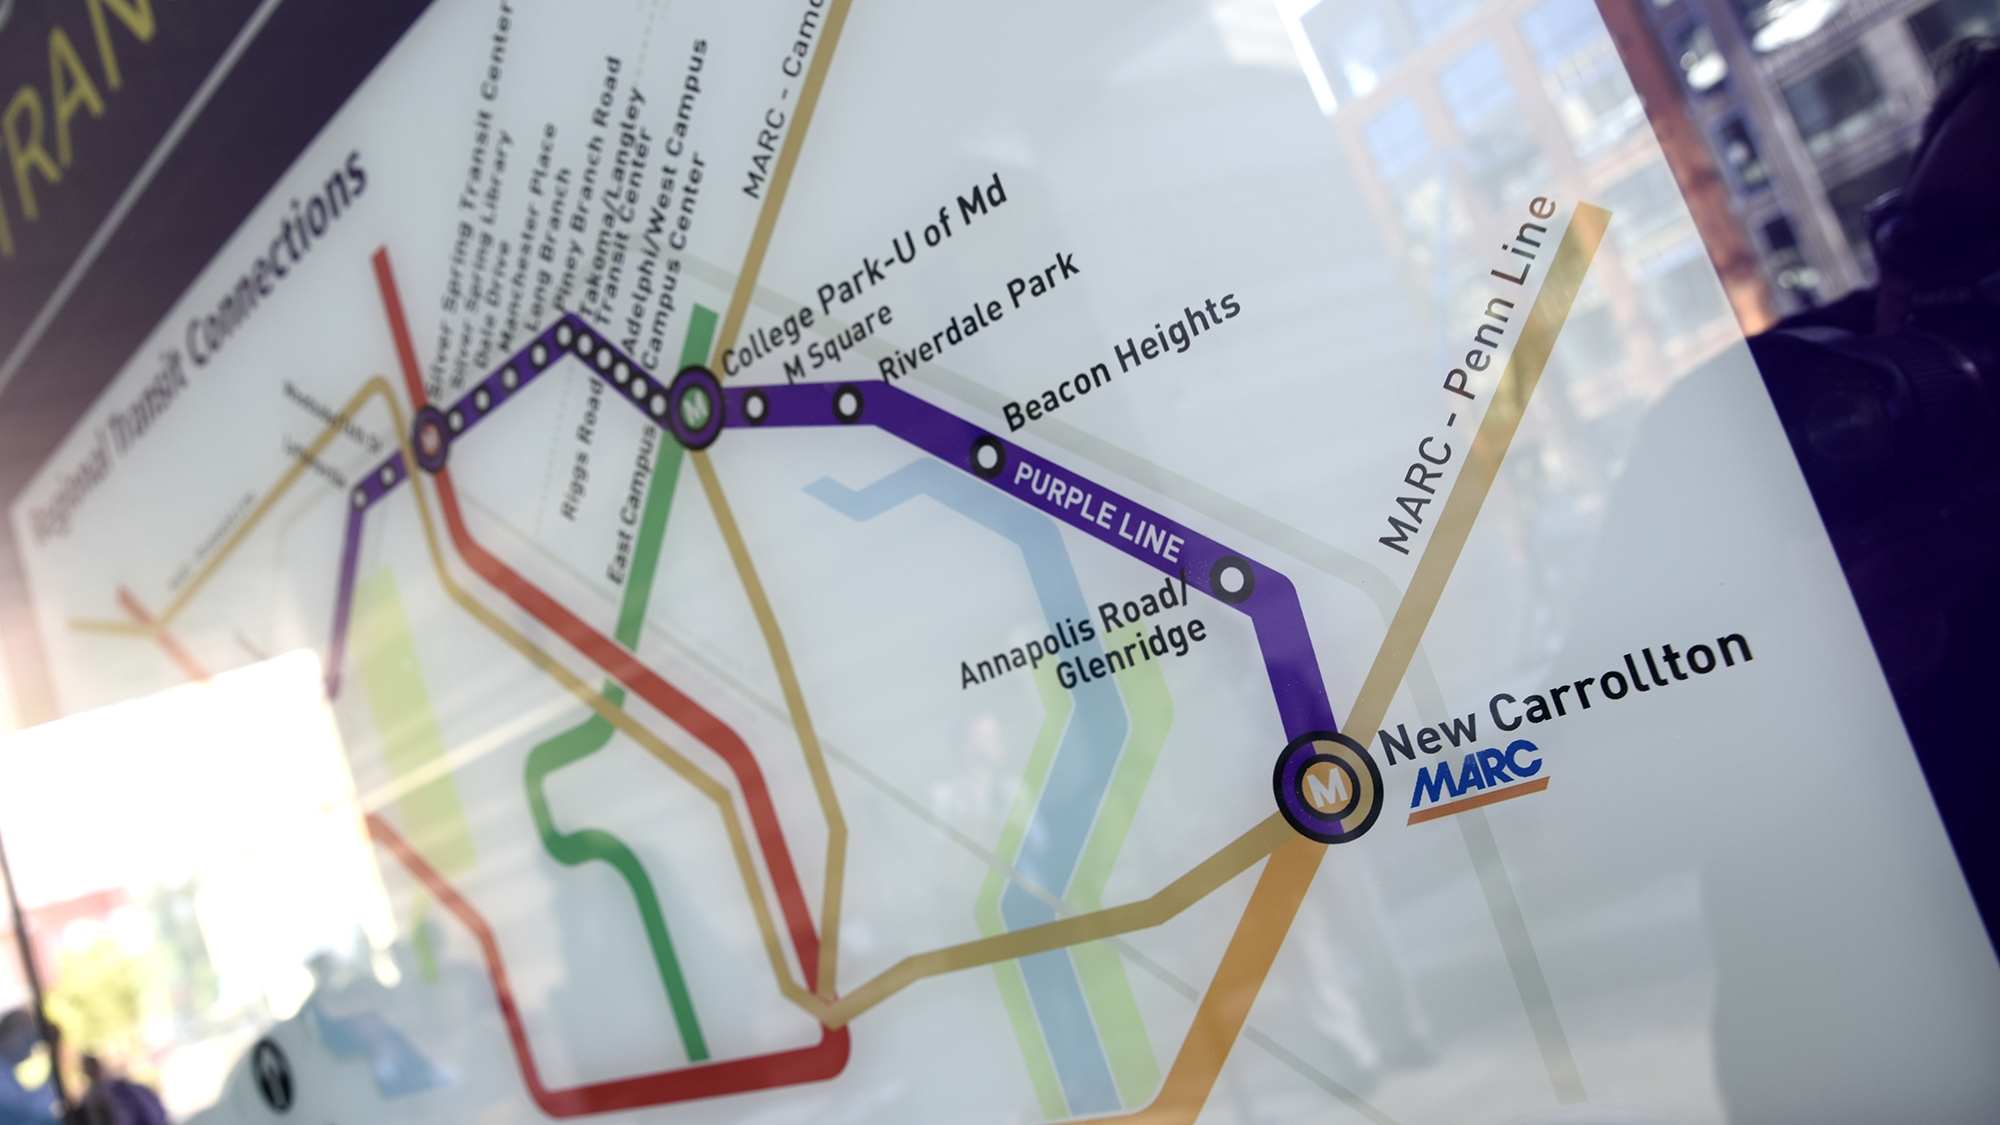 Purple Line - A $2 billion 16-mile light rail transit system with 21 passenger stations in under construction. The Purple Line will extend inside the Capital Beltway from New Carrollton in Prince George's County to Bethesda in Montgomery County. There will be 11 passenger stations in Prince George's County connecting central business districts and Metro and MARC stations.